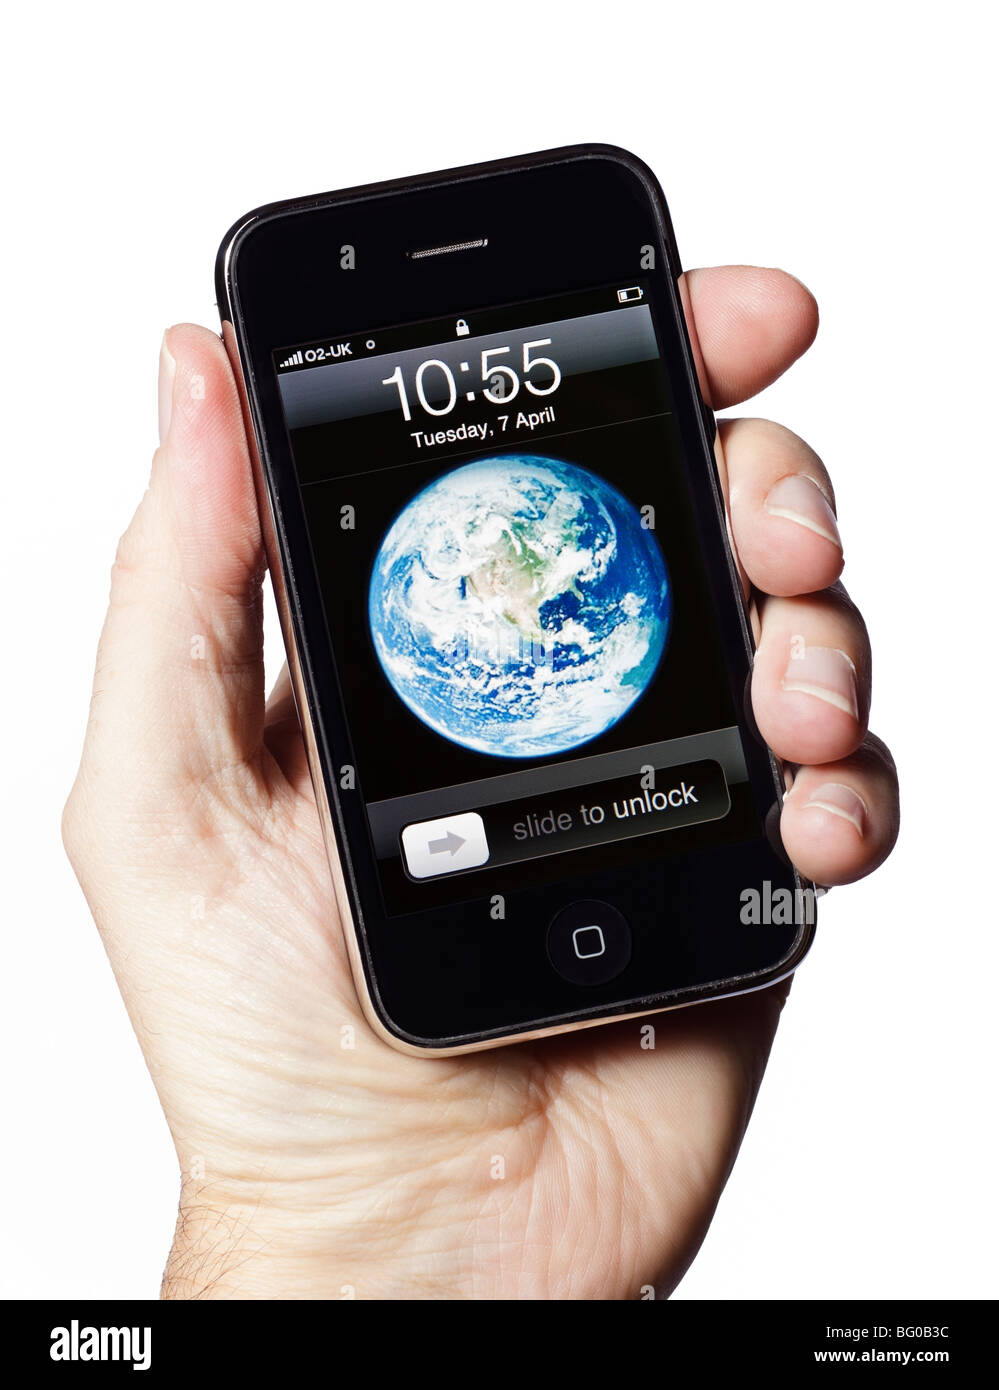 Male hand holding iPhone showing start screen, cut out - Stock Image